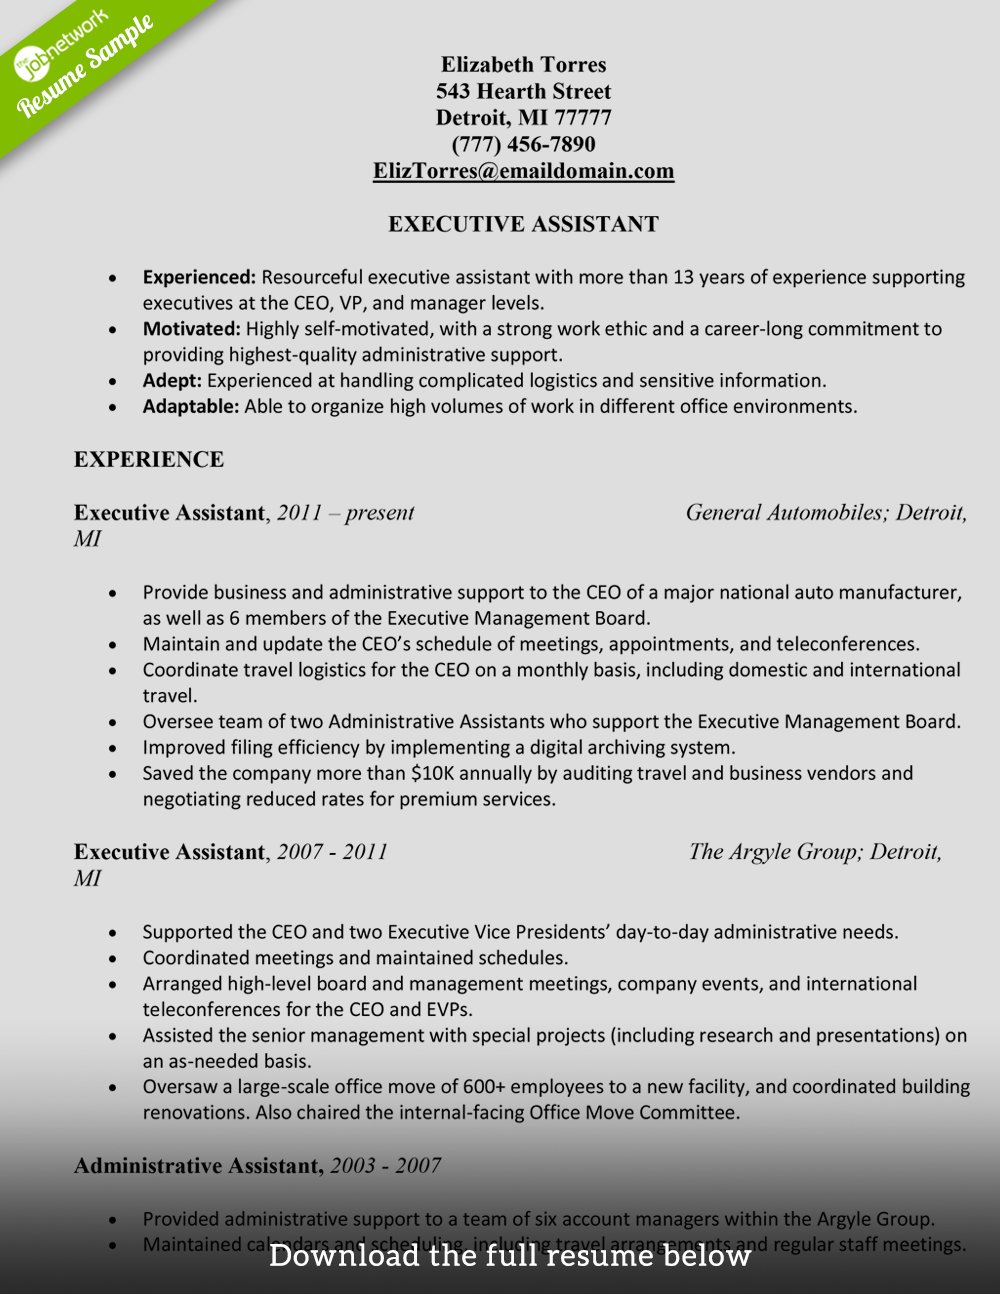 Administrative Assistant Resume Elizabeth Torres  Resume Sample Administrative Assistant